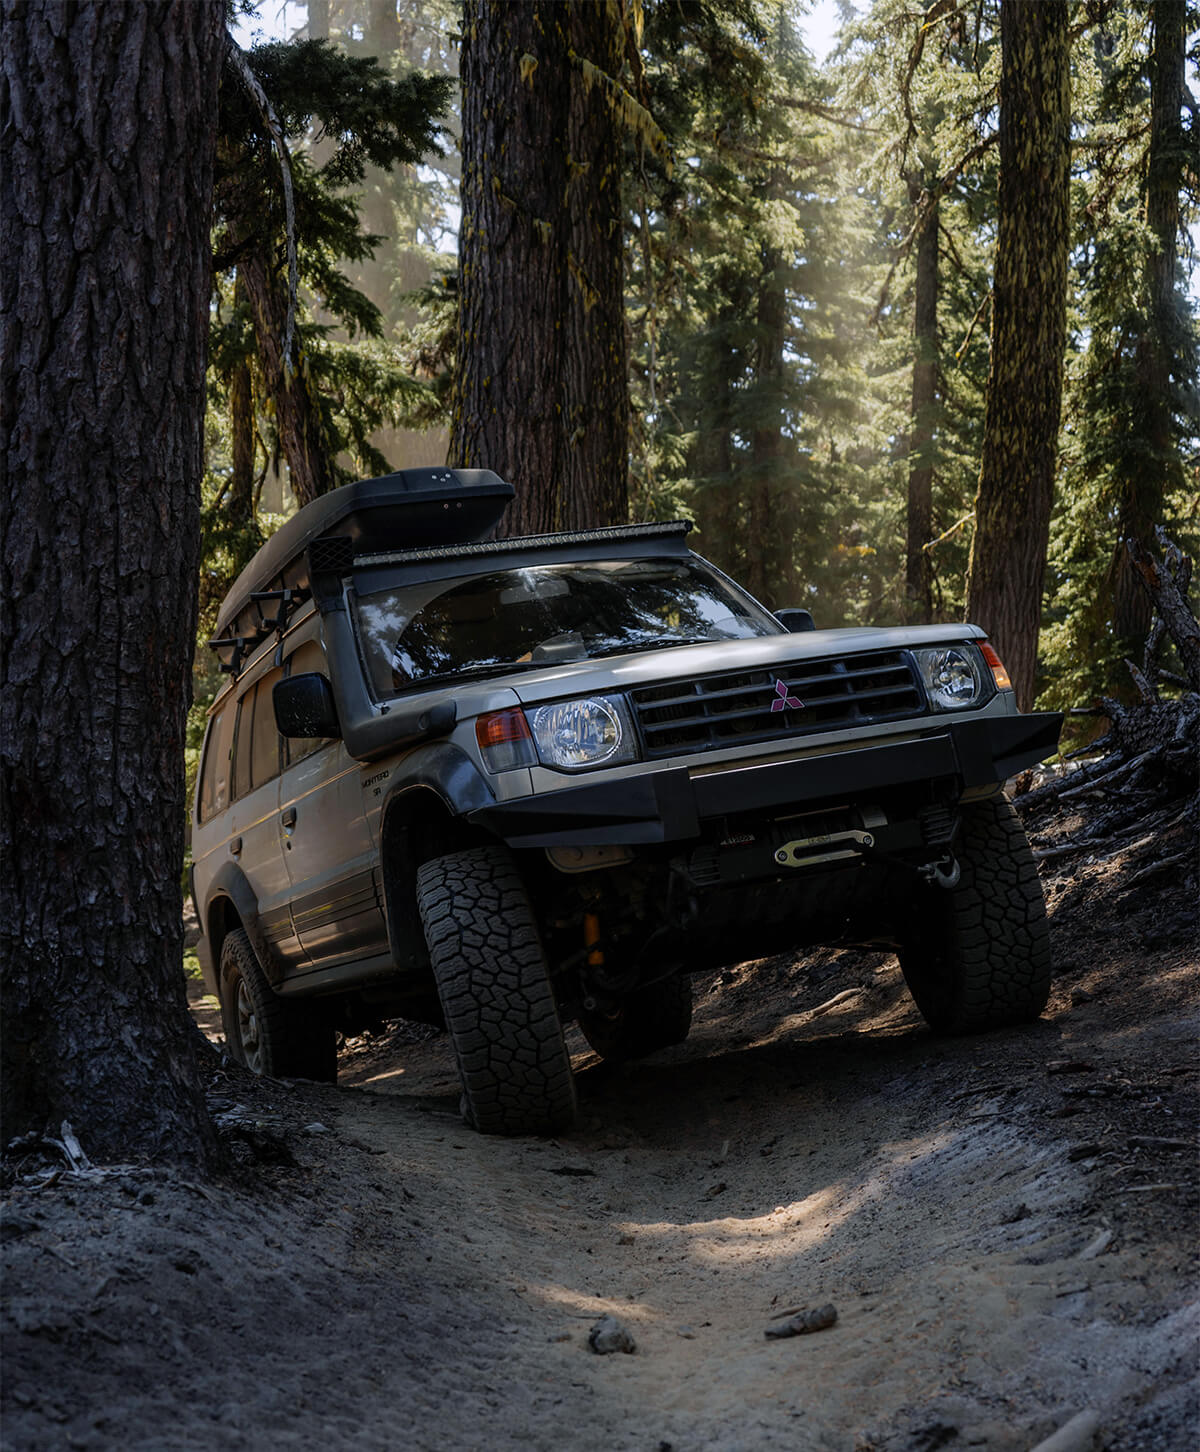 Mitsubishi Montero 33 inch tires offroading and overlanding